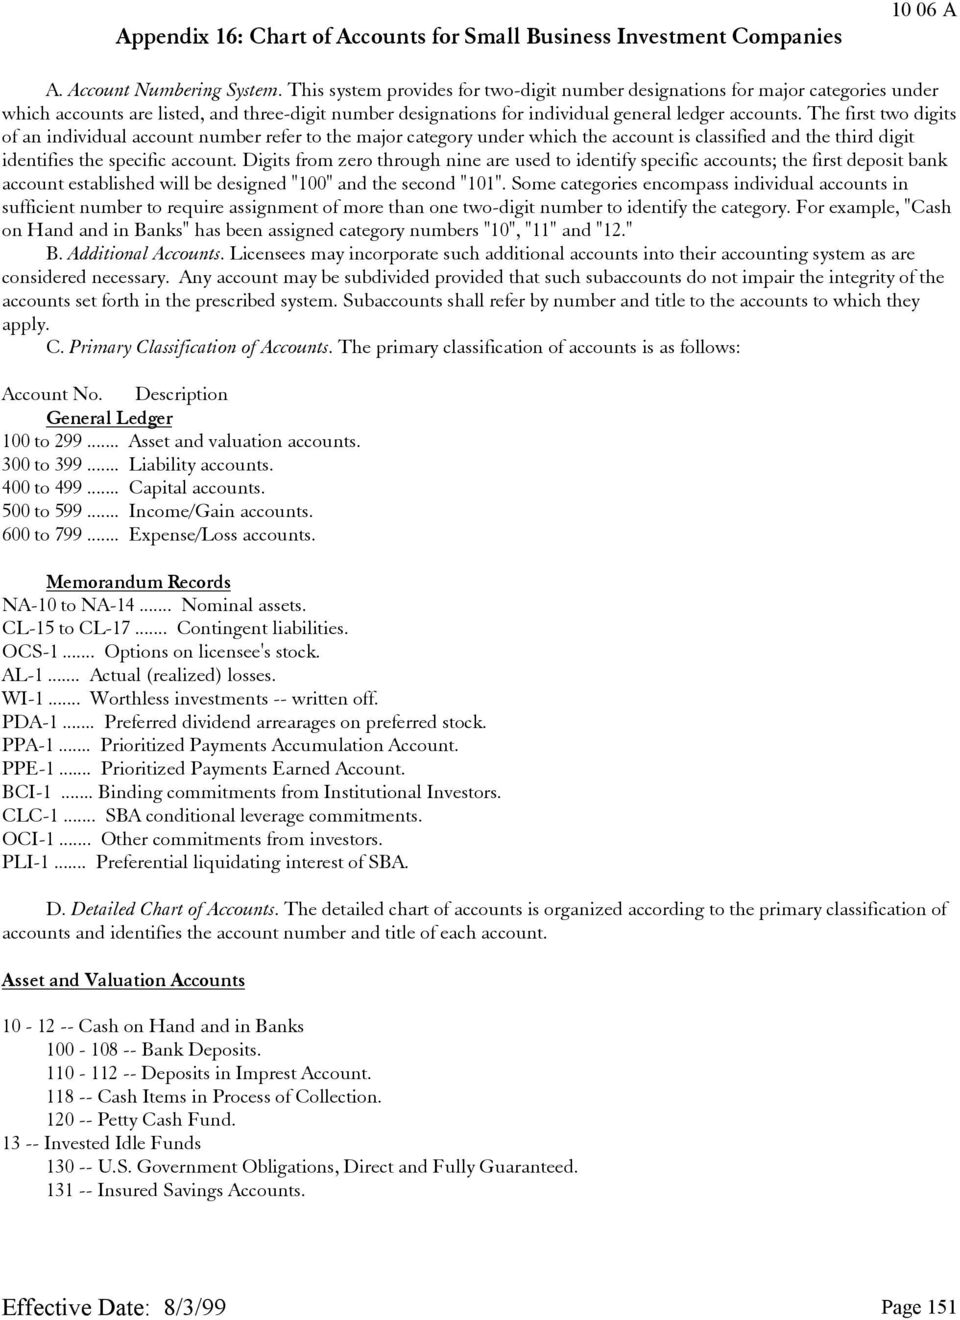 Appendix 16: Chart of Accounts for Small Business Investment